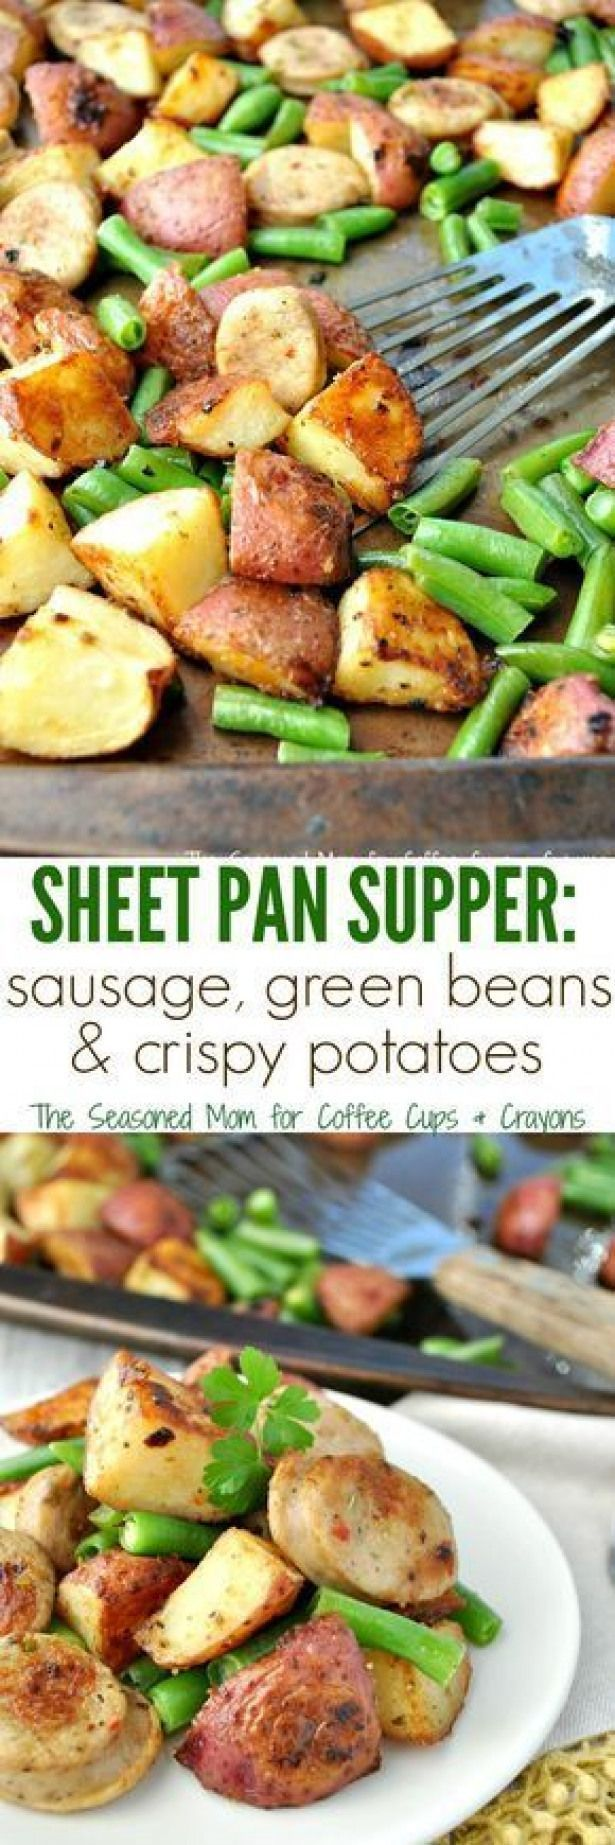 This Sheet Pan Supper is loaded with perfectly-seasoned and crispy potatoes sausage and green beans for an entire meal that cooks on one tray -- with very little prep and very little cleanup! #dietplan #sheetpansuppers This Sheet Pan Supper is loaded with perfectly-seasoned and crispy potatoes sausage and green beans for an entire meal that cooks on one tray -- with very little prep and very little cleanup! #dietplan #sheetpansuppers This Sheet Pan Supper is loaded with perfectly-seasoned and cr #sheetpansuppers